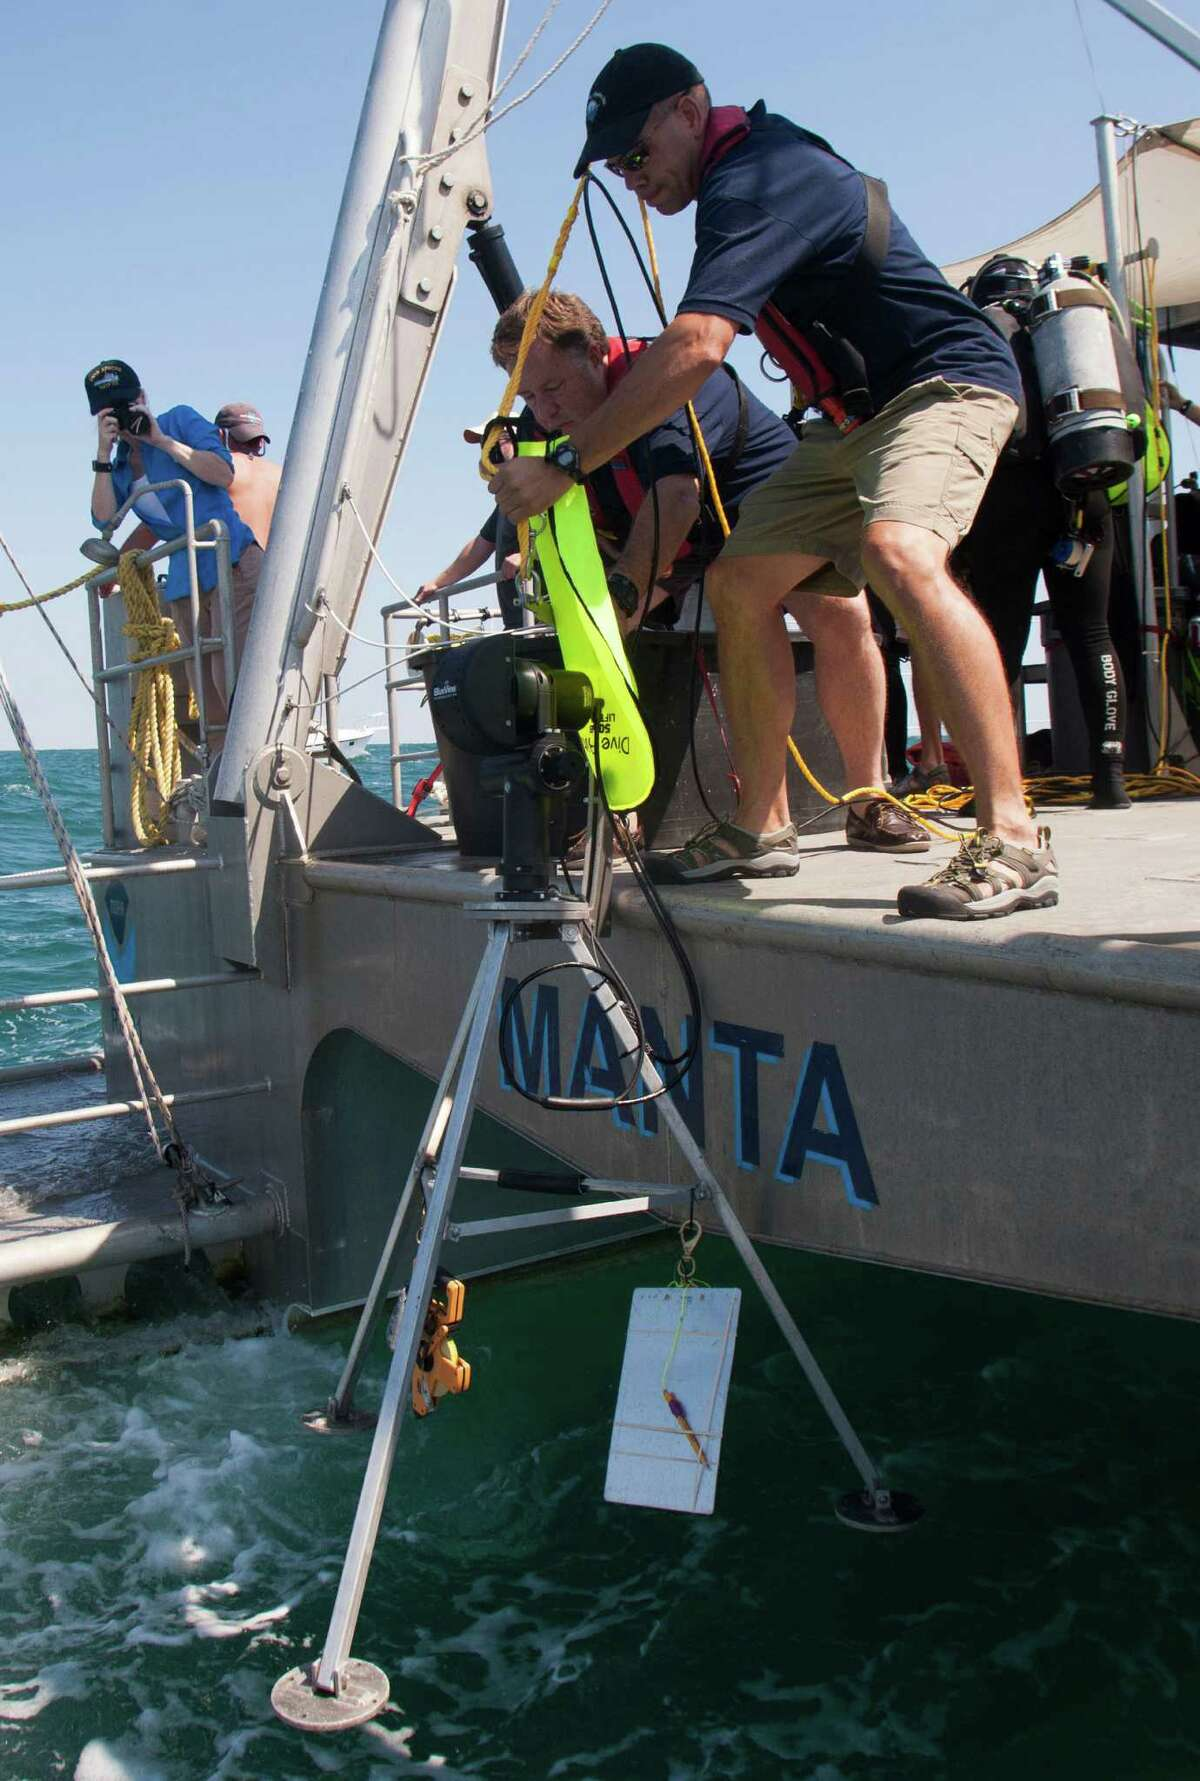 James Glaeser deploys sonar equipment from a research vessel to do acoustic scans of the USS Hatteras. The only Union vessel sunk in the Gulf of Mexico during the Civil War, it rests beneath 57 feet of water.